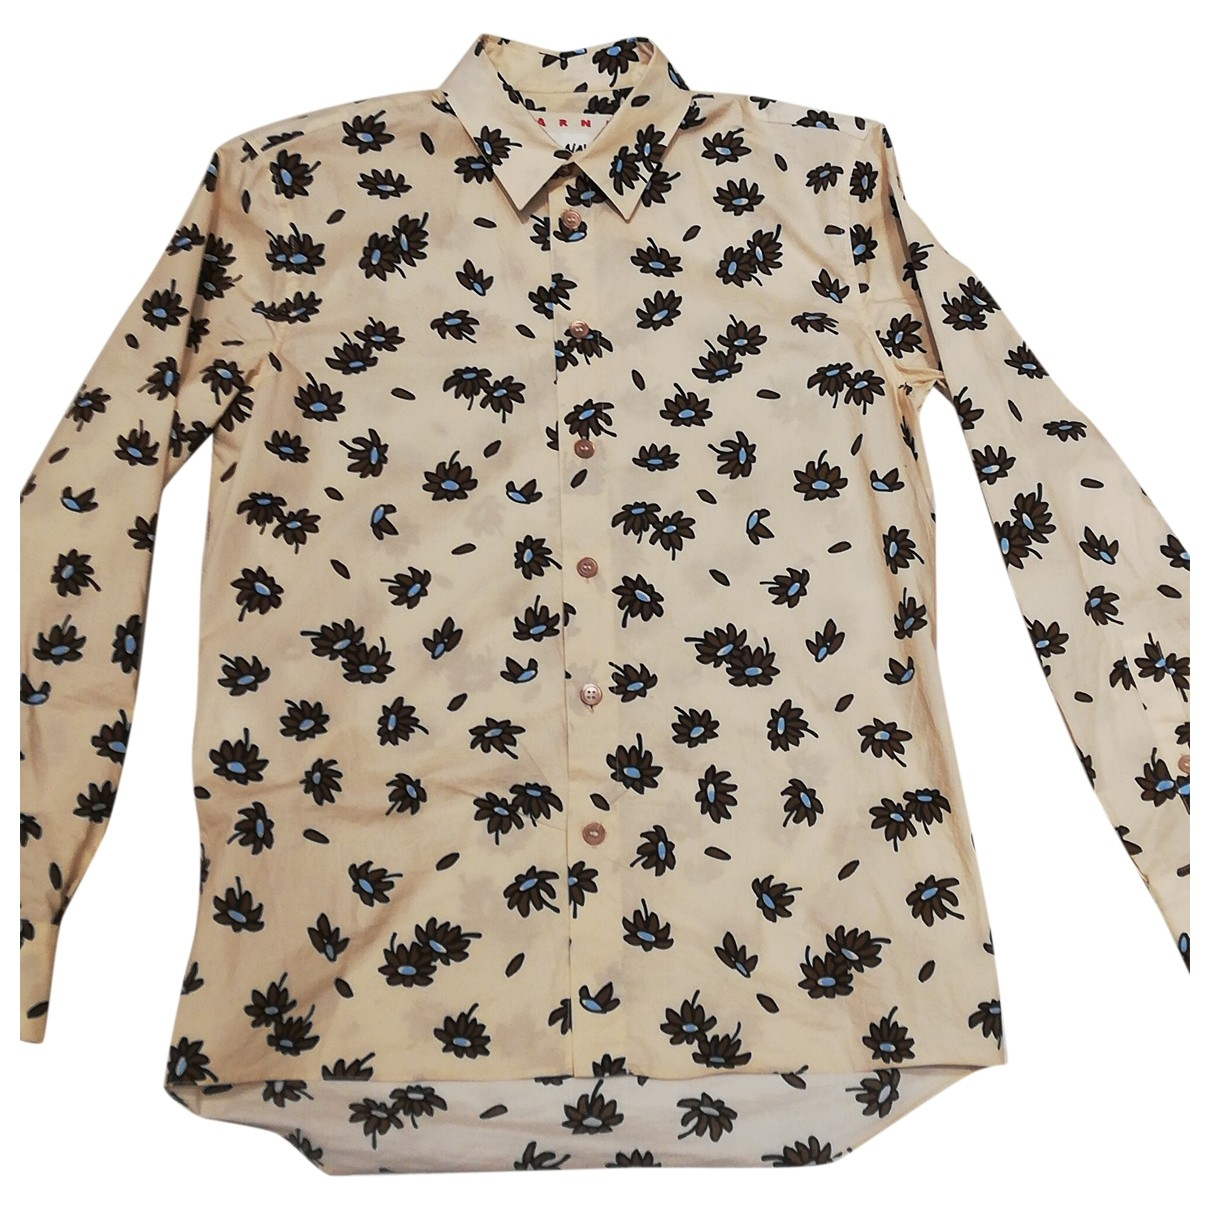 Marni \N Cotton  top for Women 36 IT